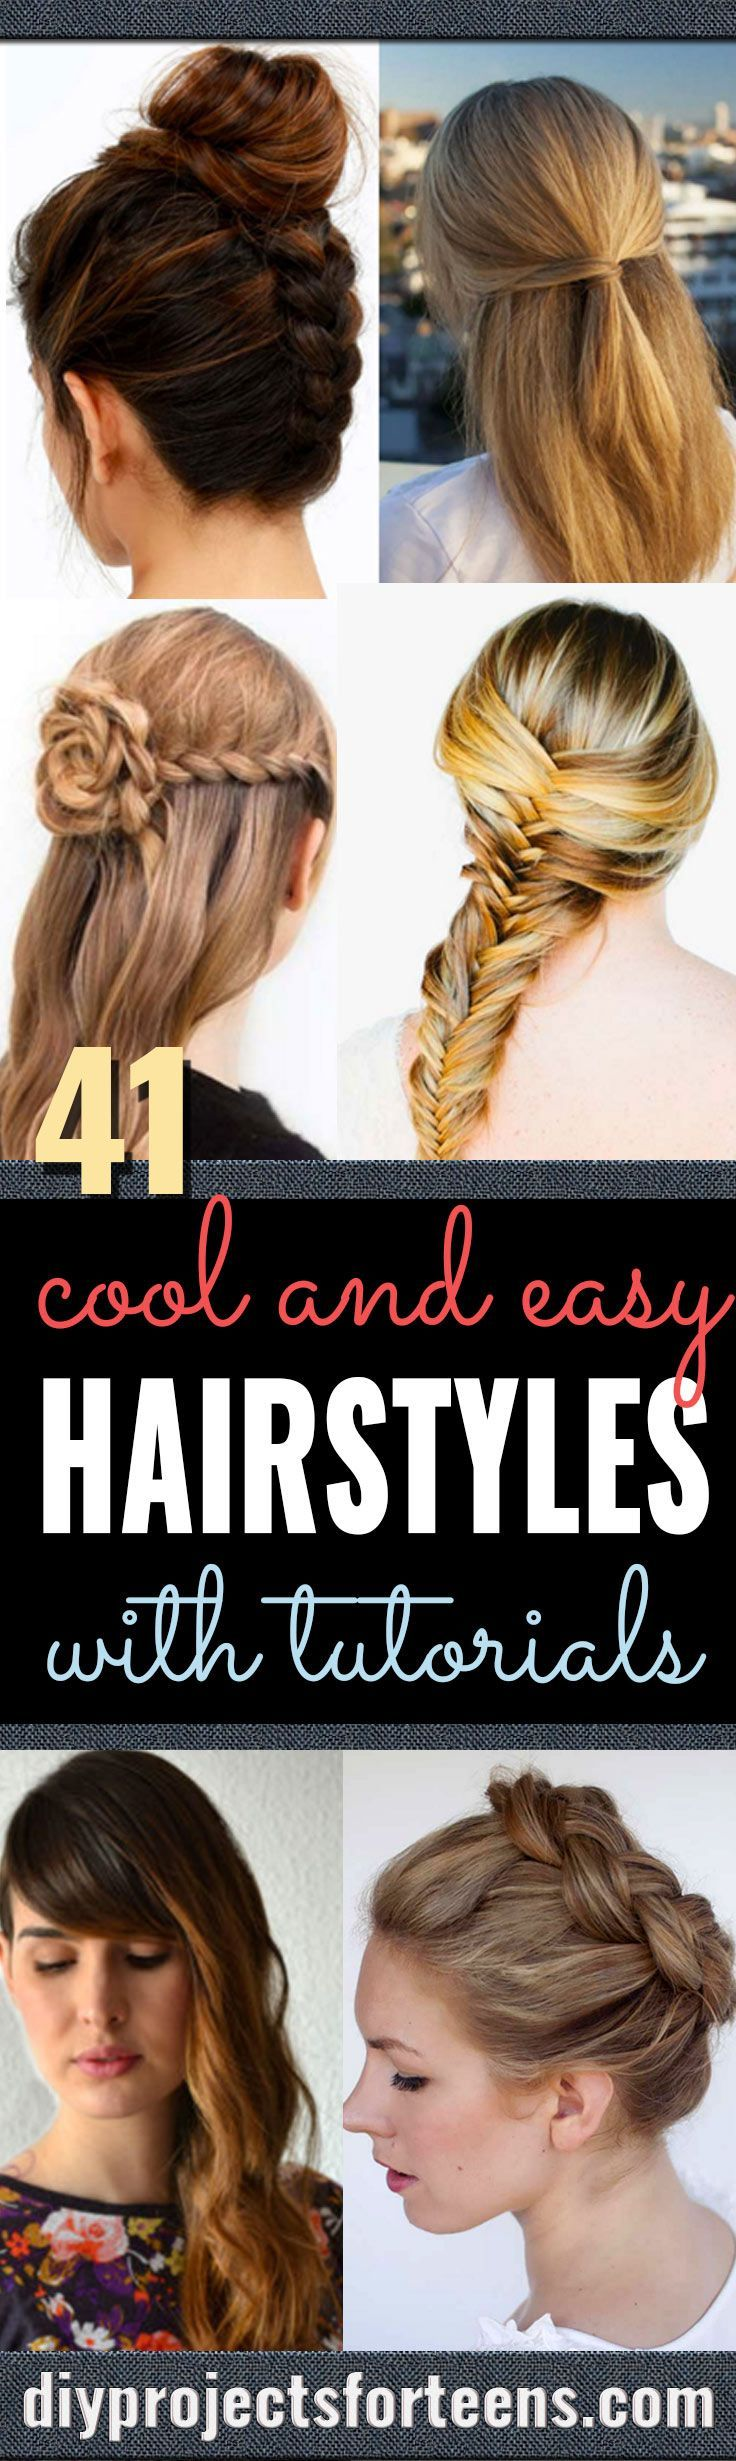 cool Cool and Easy DIY Hairstyles - Quick and Easy Ideas for Back to School Styles fo... by http://www.top10z-hairstyles.top/hair-tutorials/cool-and-easy-diy-hairstyles-quick-and-easy-ideas-for-back-to-school-styles-fo/